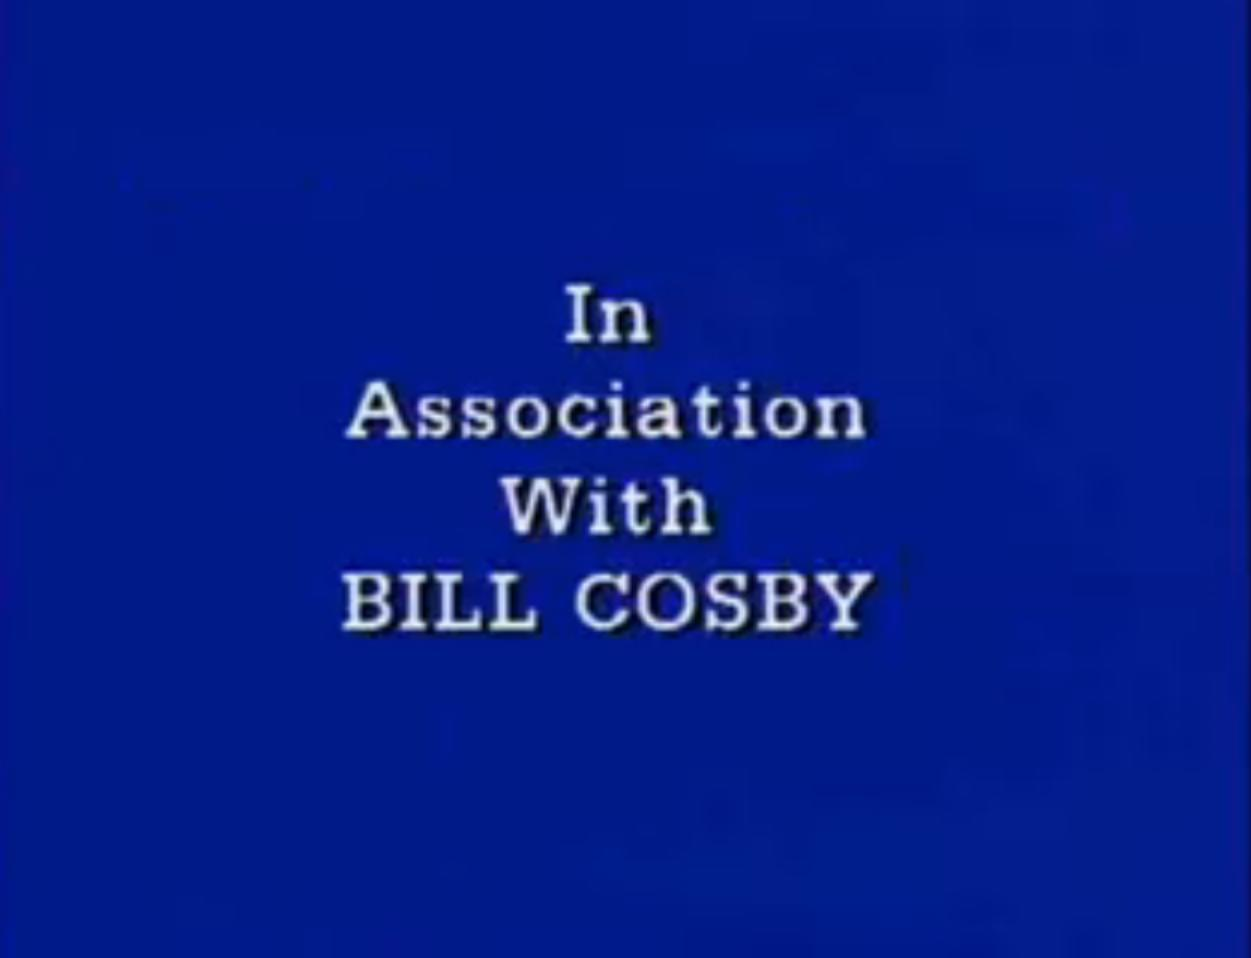 Bill Cosby Productions (1984-1987)